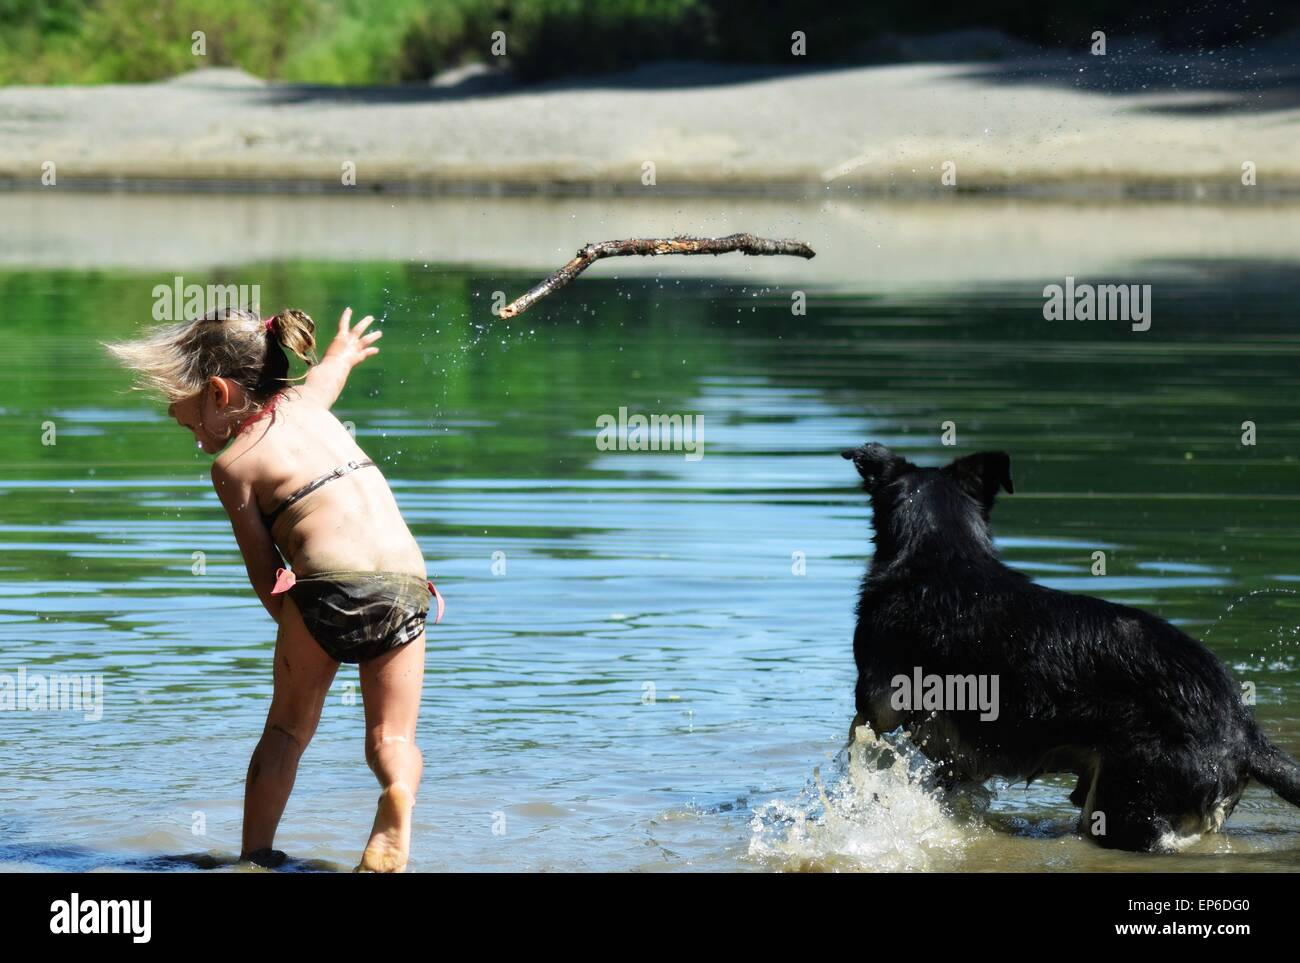 Young Girl Throwing A Stick For A Dog Into A River Stock Photo